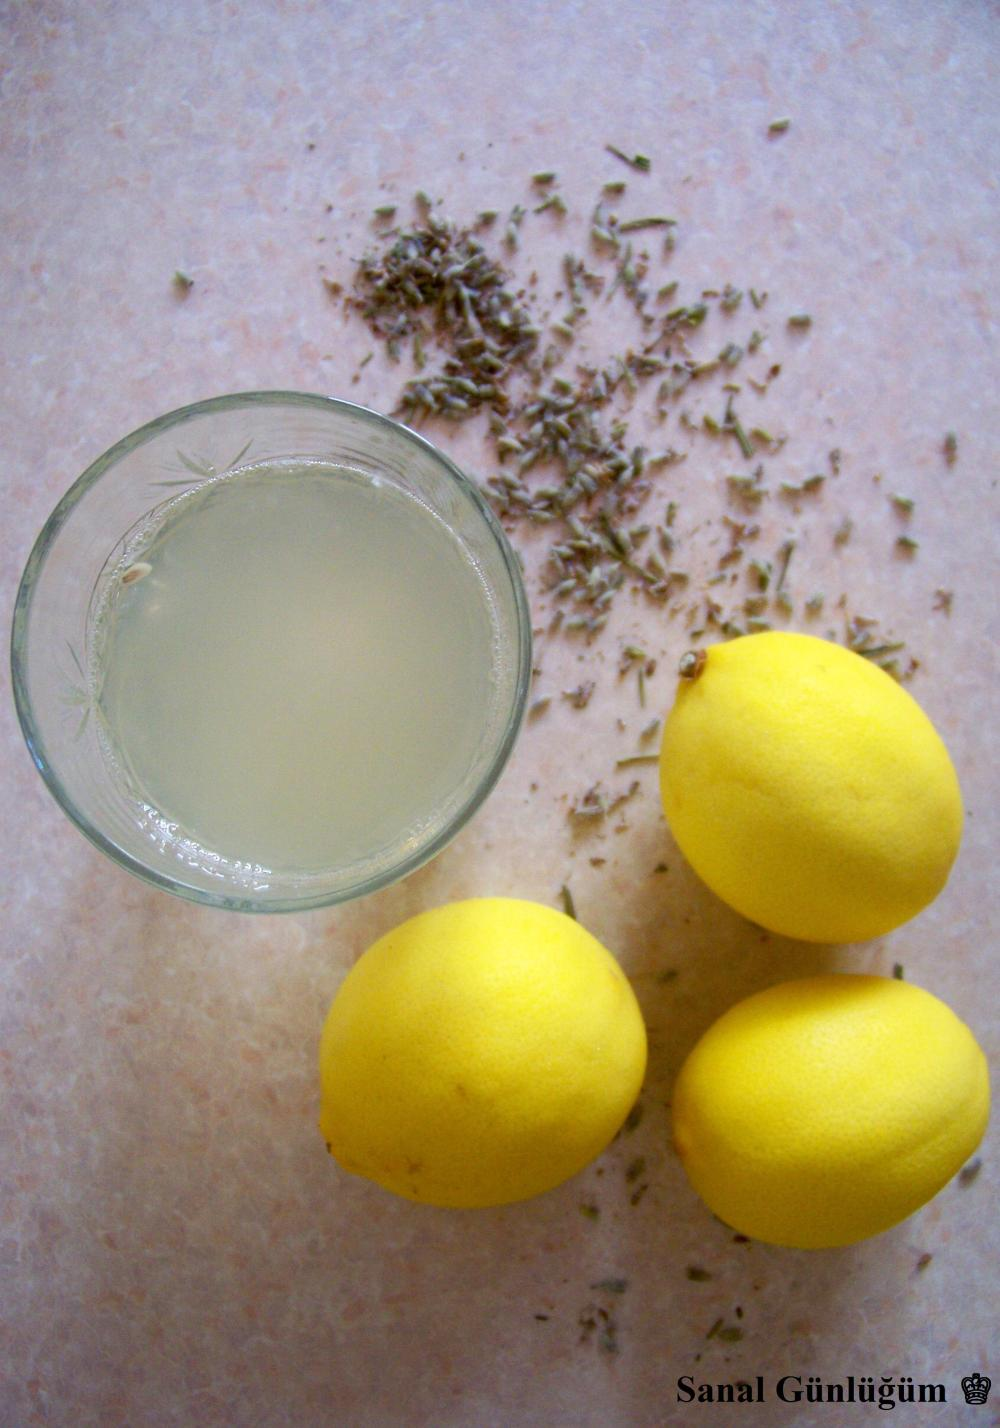 Lavantalı Limonata